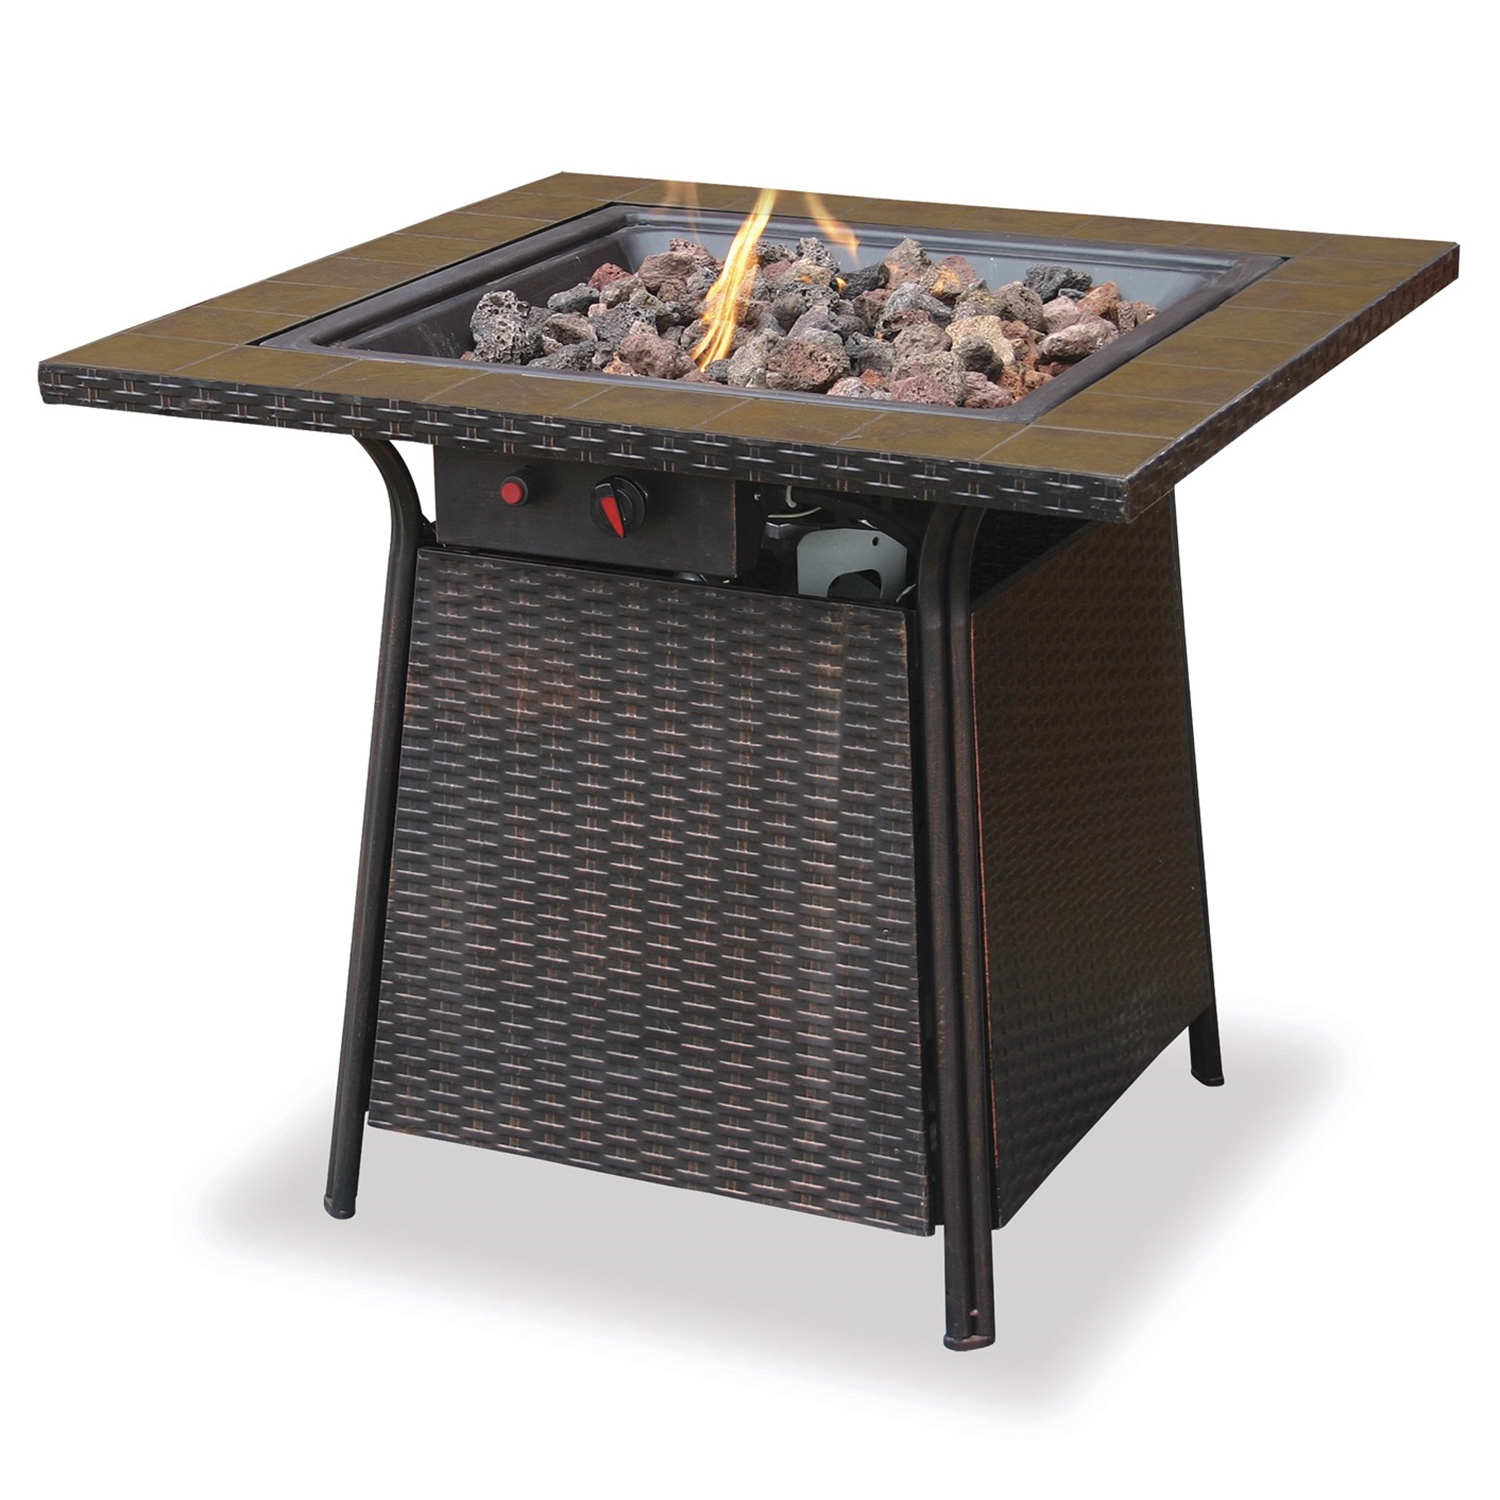 "UniFlame 32"" LP Firepit with Ceramic Tile Table by Endless Summer"